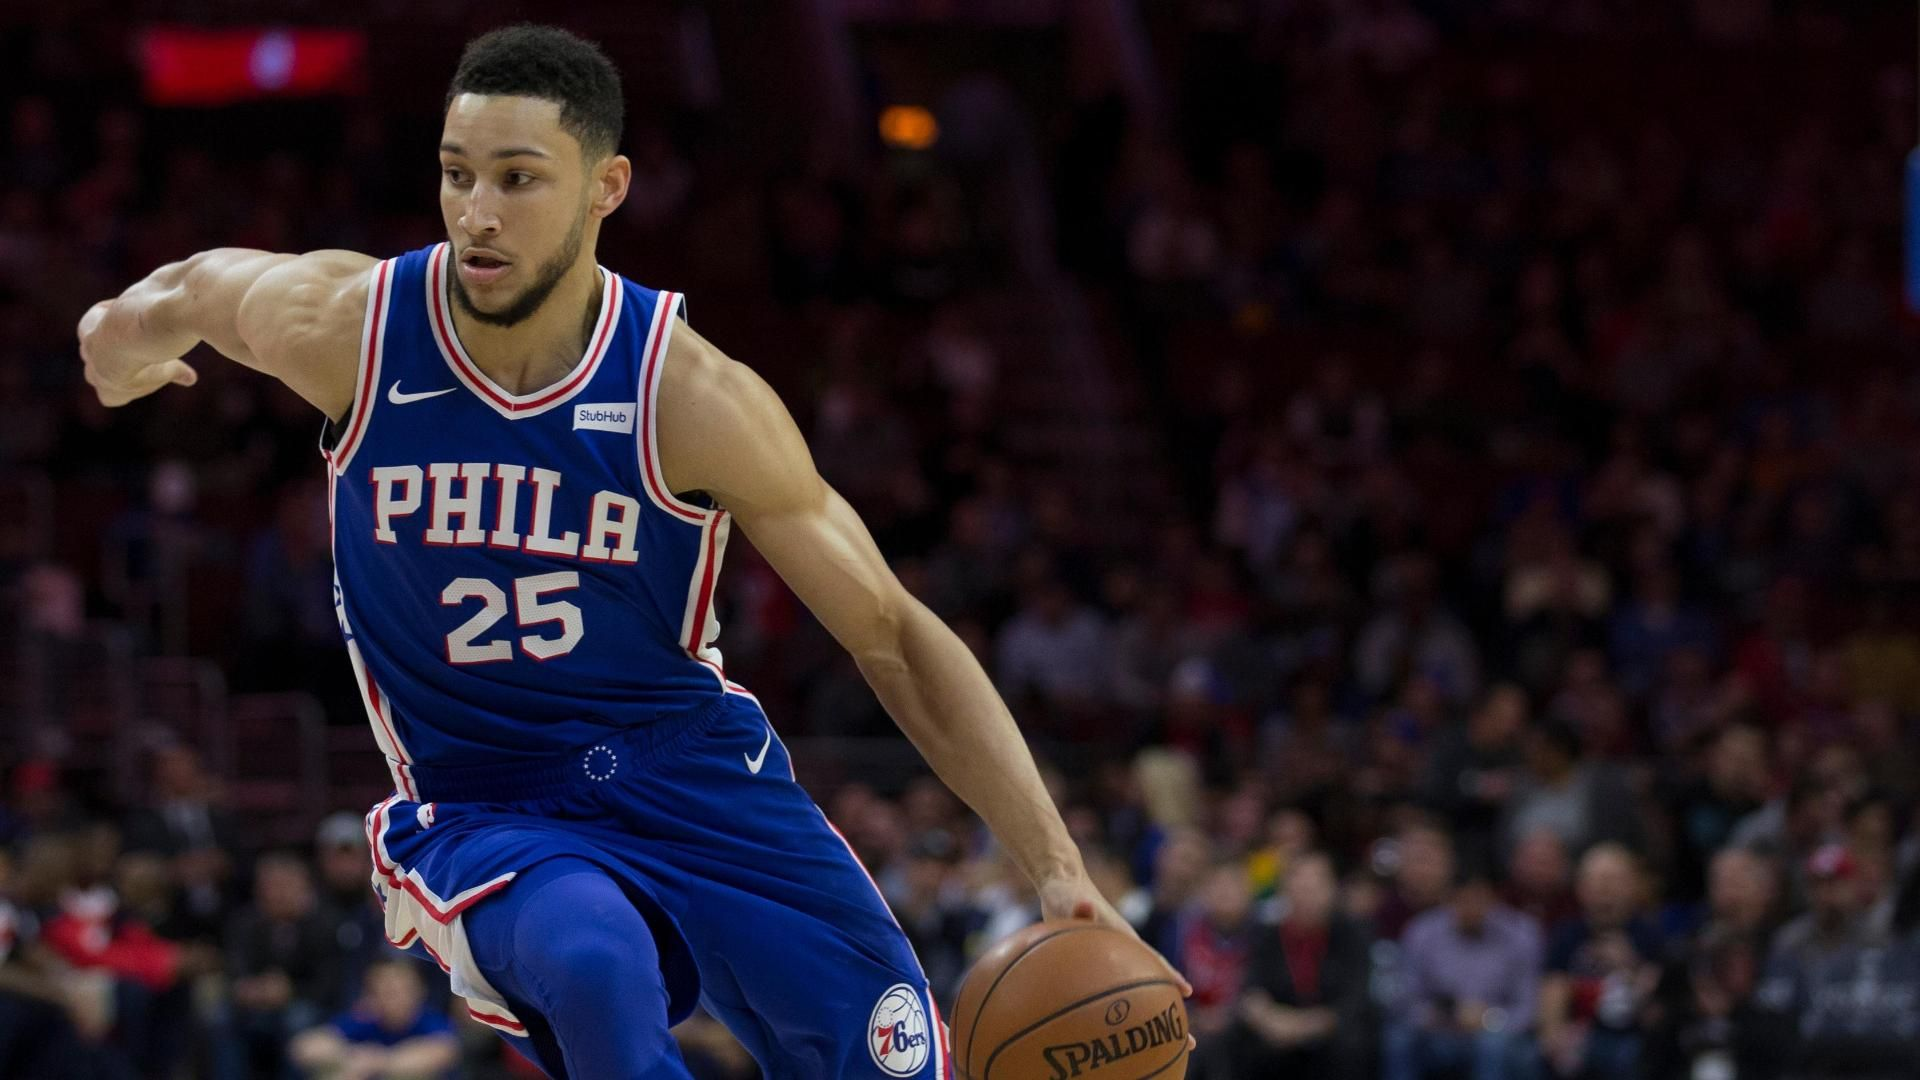 Ben Simmons' uncommon athletic roots